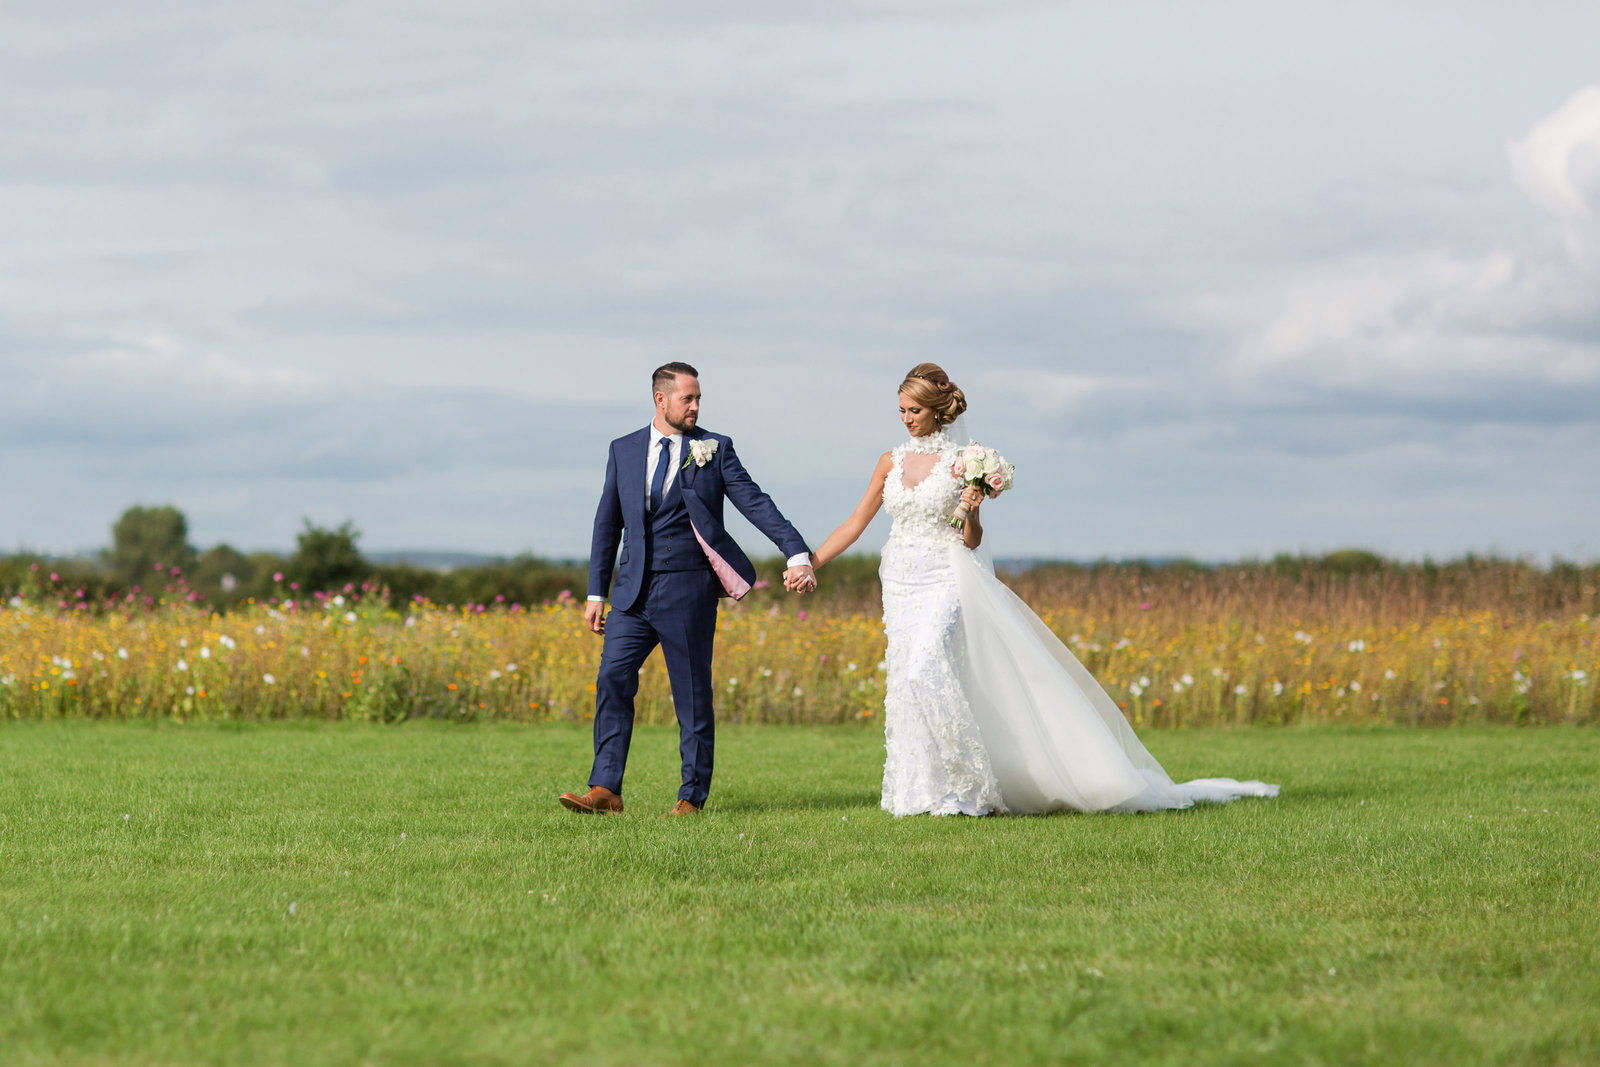 adorlee-0290-southend-barns-wedding-photographer-chichester-west-sussex